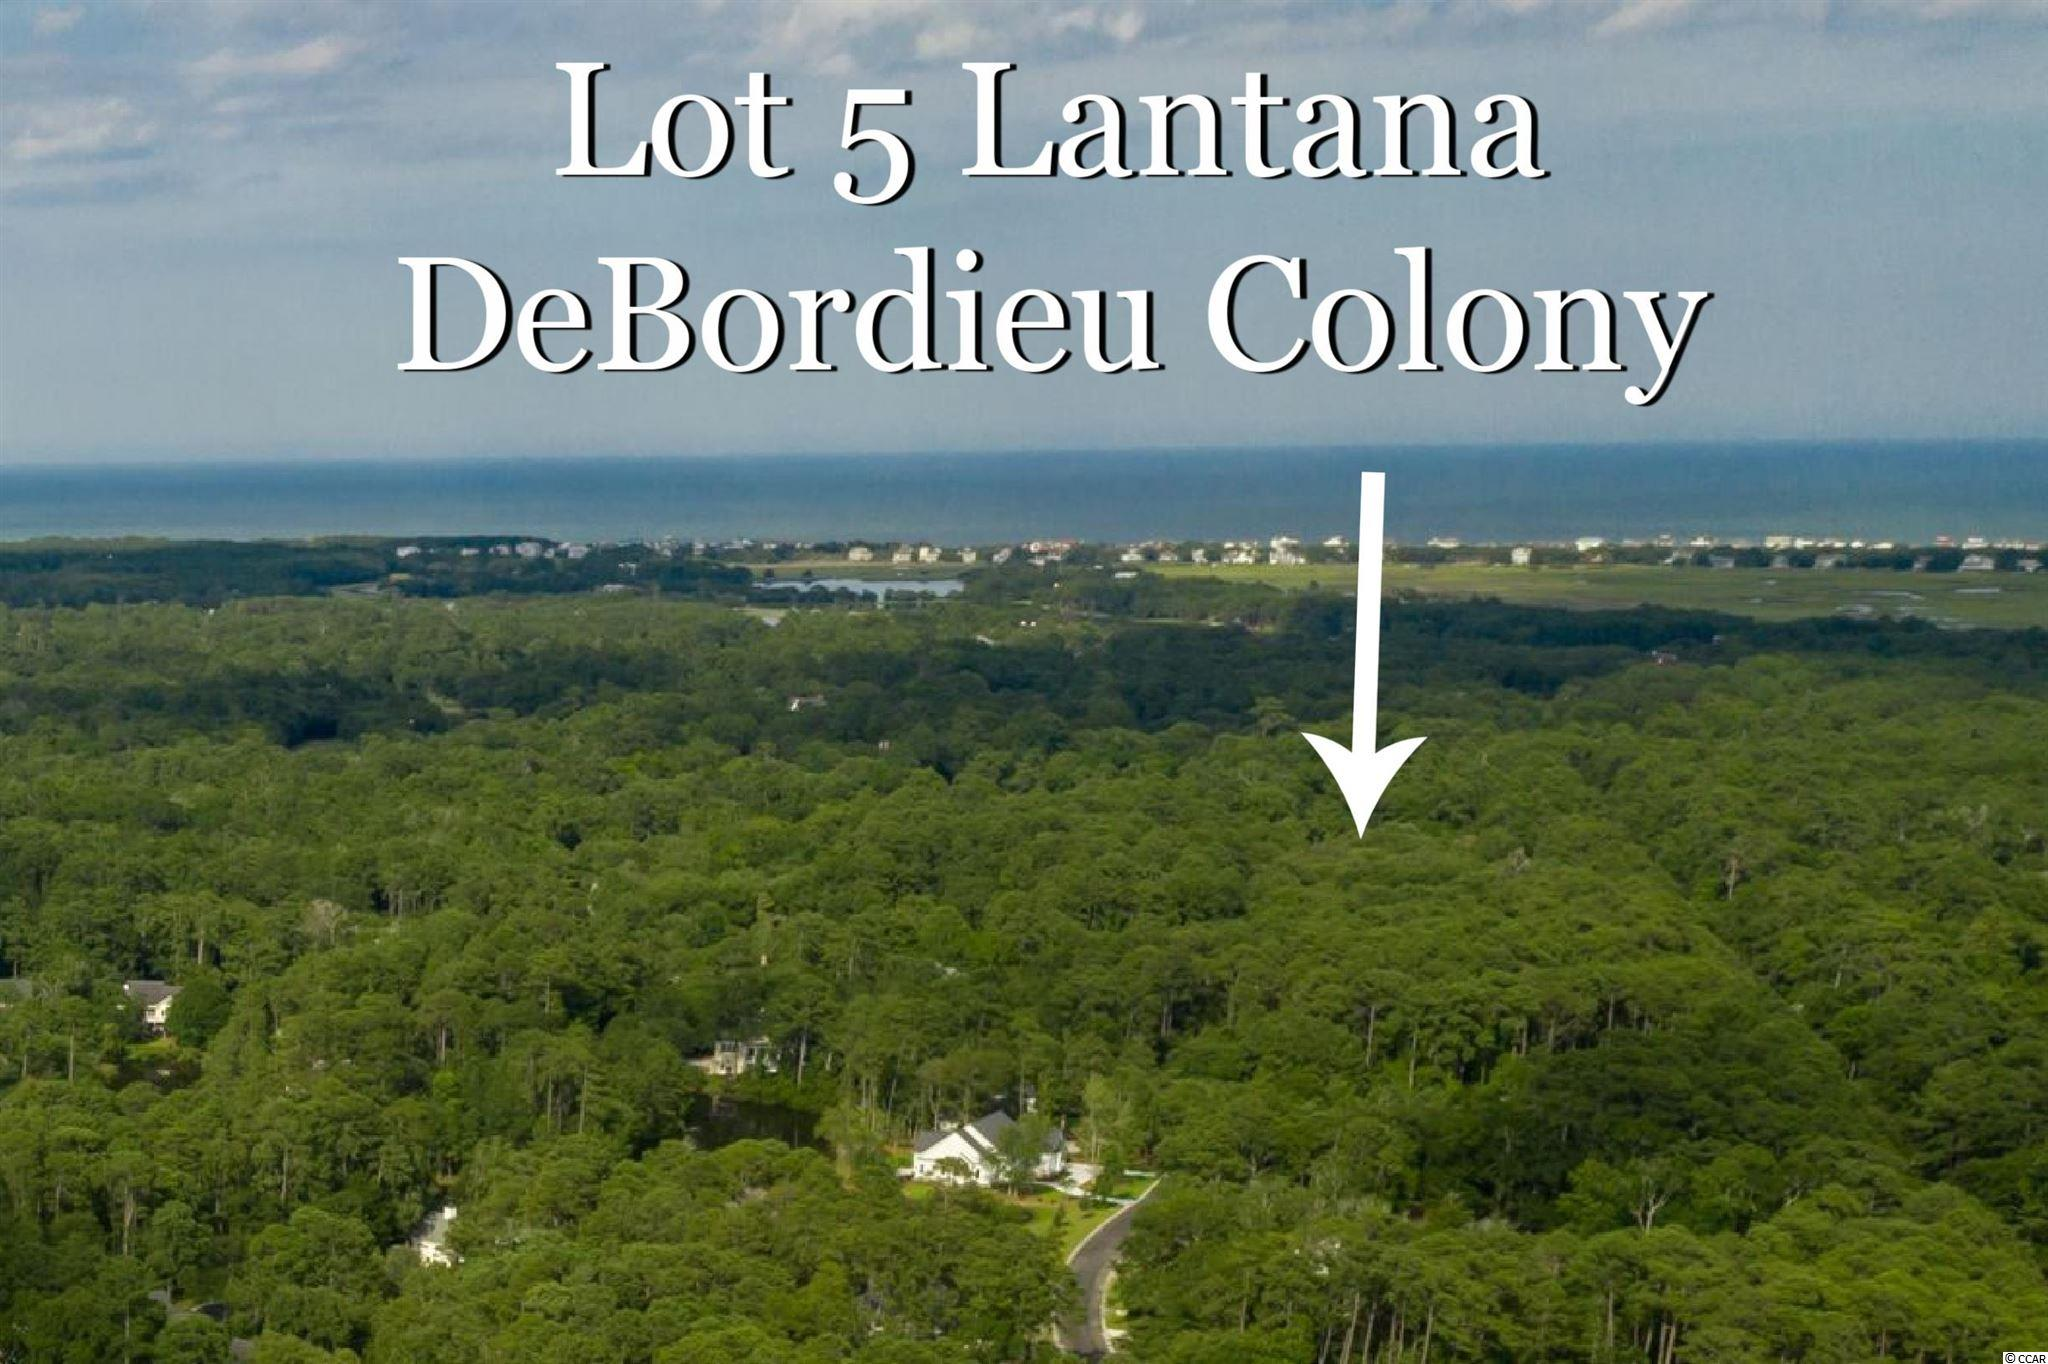 ALMOST AN ACRE (.87) in DeBordieu Colony! The convenient Patewood North location is close to the entrance of DeBordieu, providing quick access to Pawleys Island and Georgetown area shopping, dining and health facilities, while still offering a nice leisurely golf cart ride to DeBordieu's private golf course, tennis courts, fitness center, ocean front beach club and boat landing access to North Inlet. Dimensions of this beautiful wooded home site are 112 x 278 x 181 x 248.